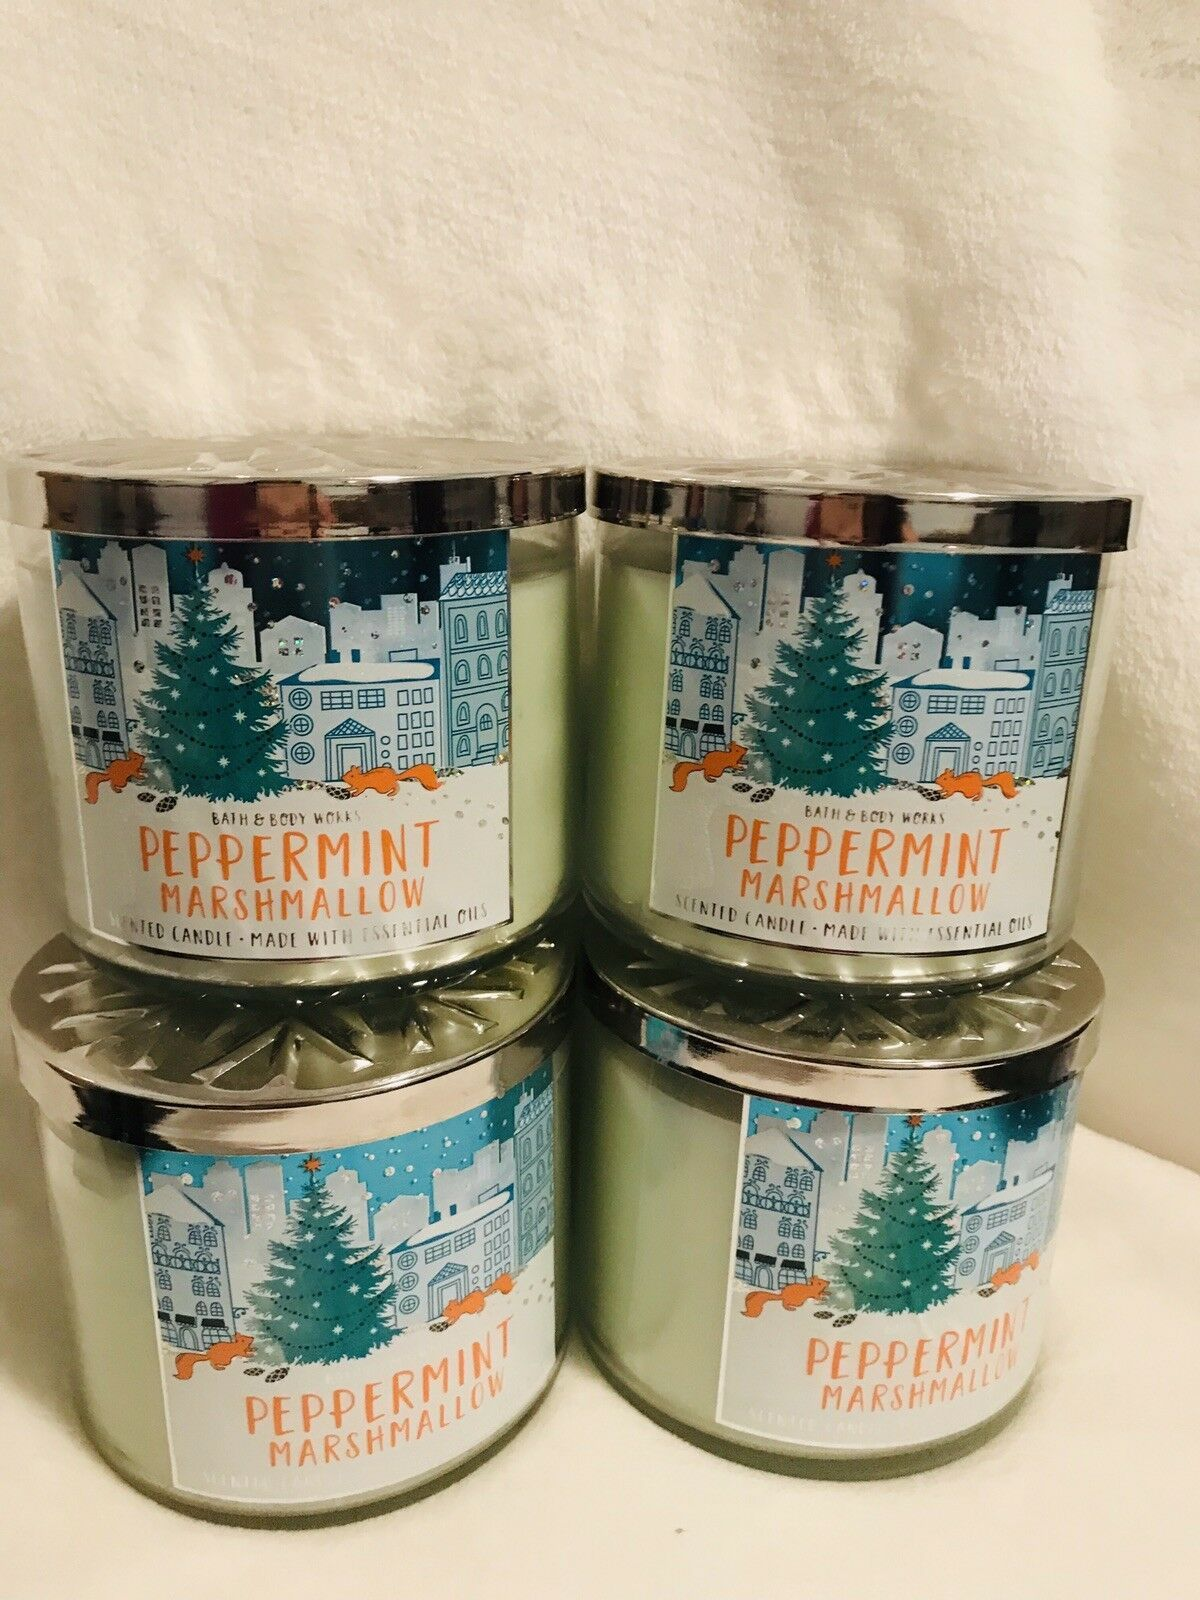 4 Bath Body Works Large 3-Wick Candle Peppermint Marshmallow